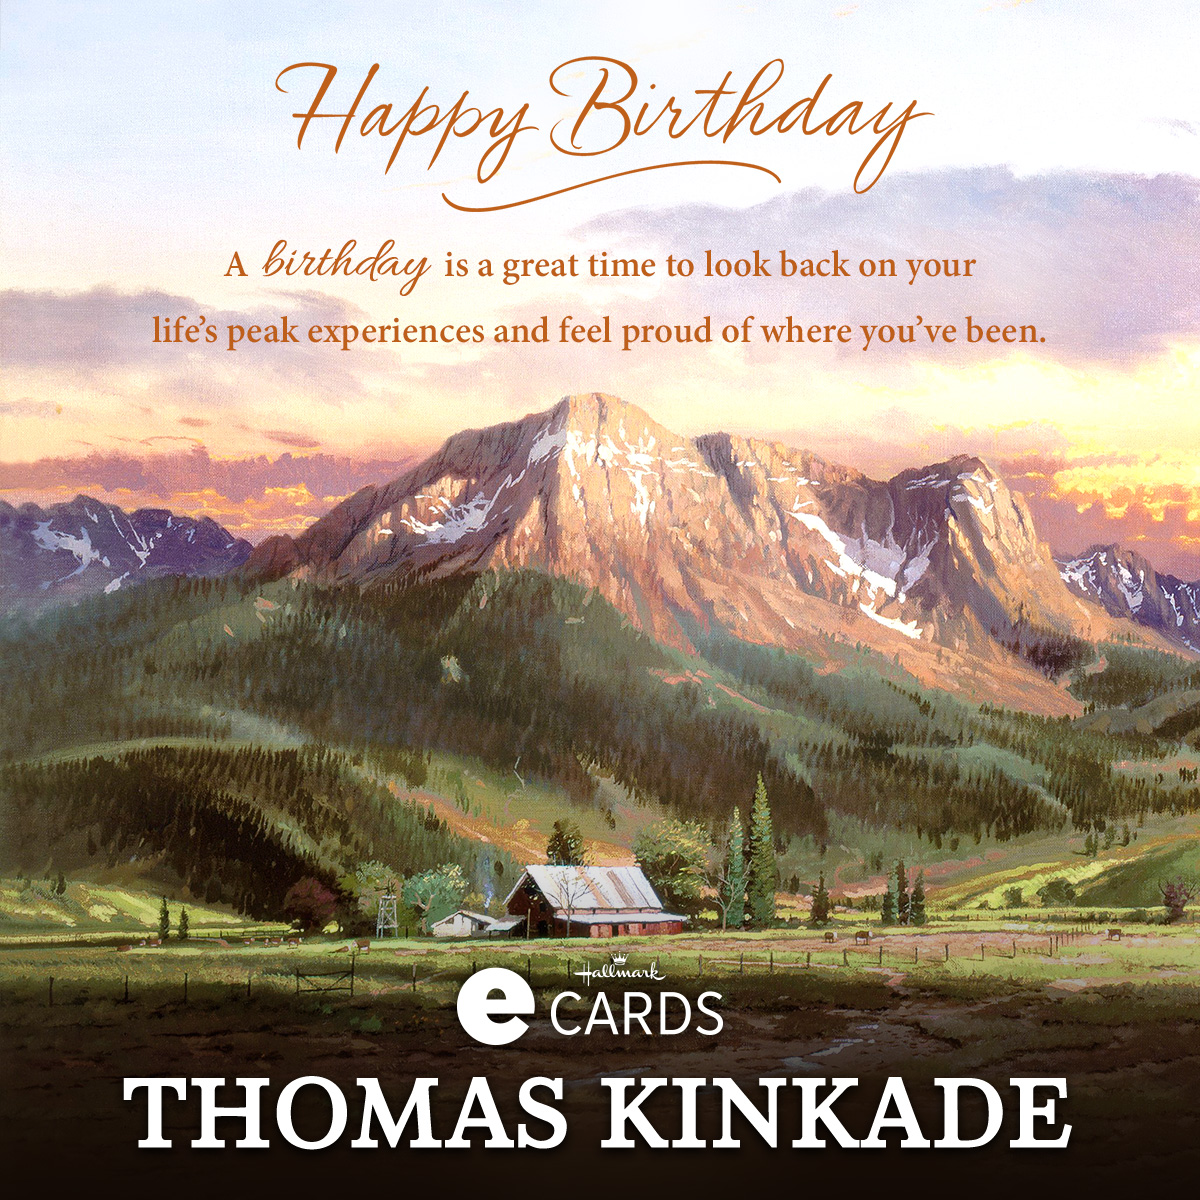 New Hallmark Birthday Ecard Dusk In The Valley The Thomas